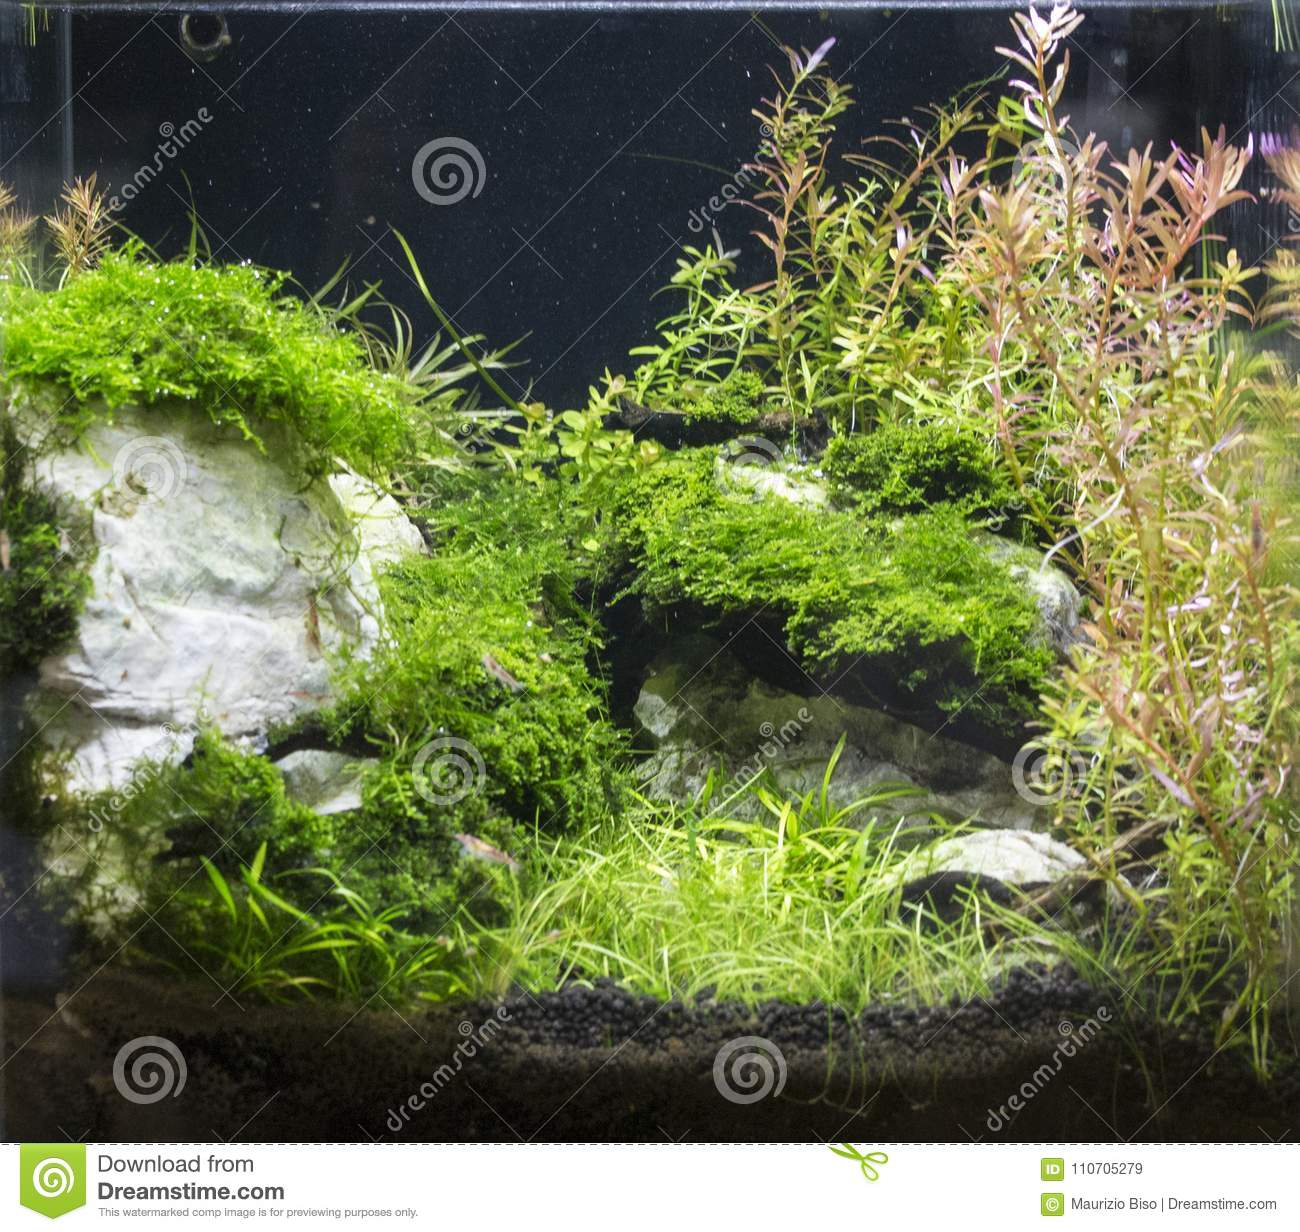 Decoration Interieur Aquarium Bel Aquarium D Eau Douce Planté Tropical Image Stock Image Du